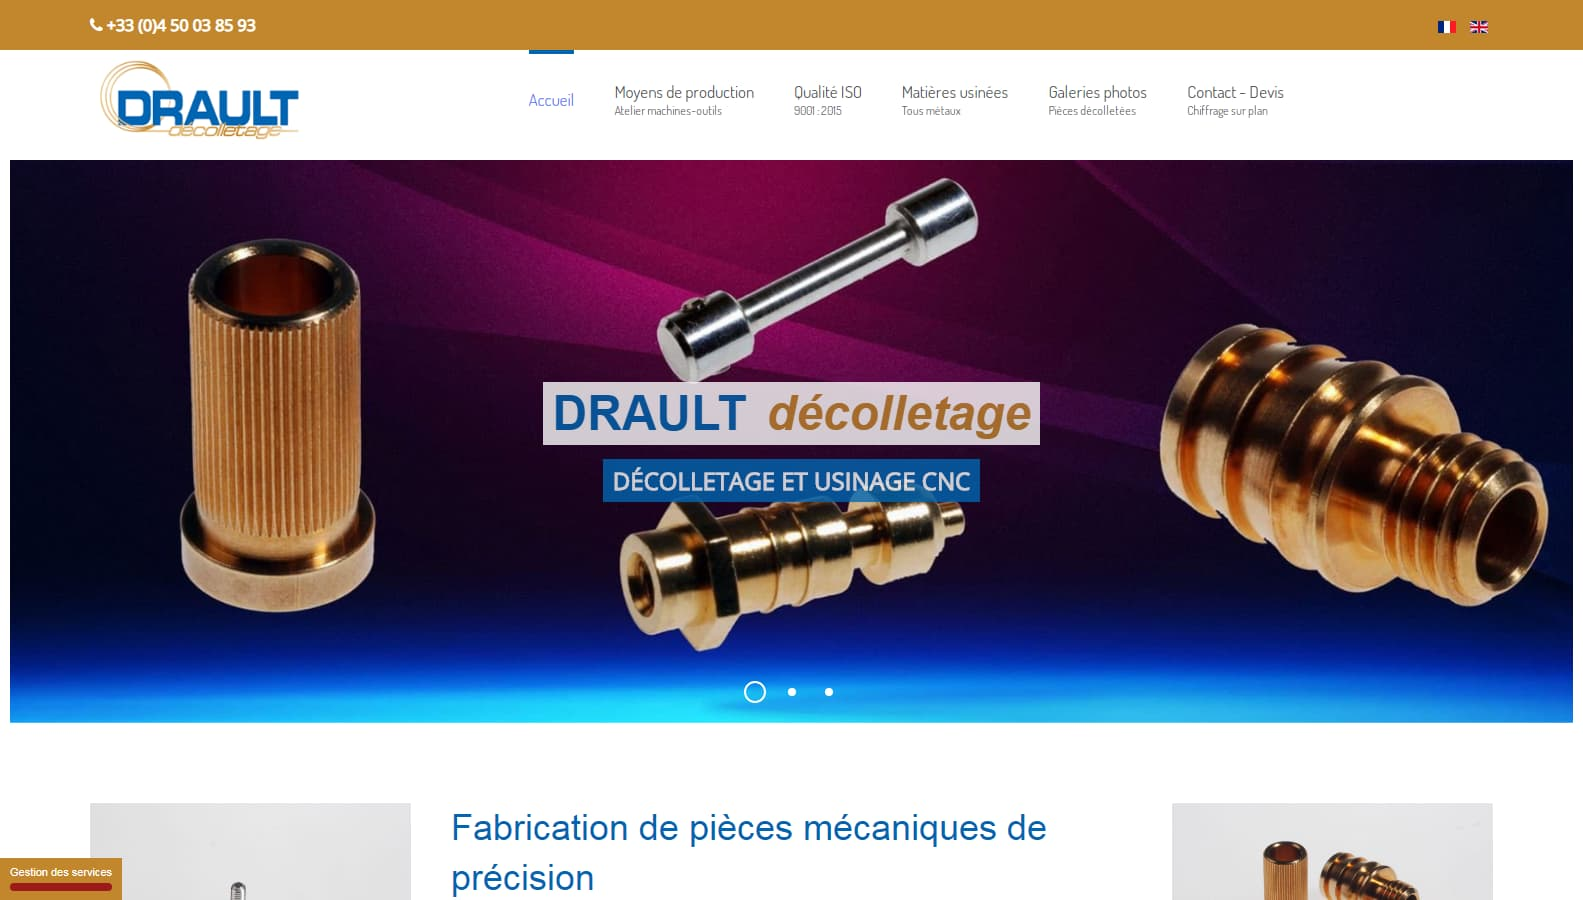 DRAULT DECOLLETAGE